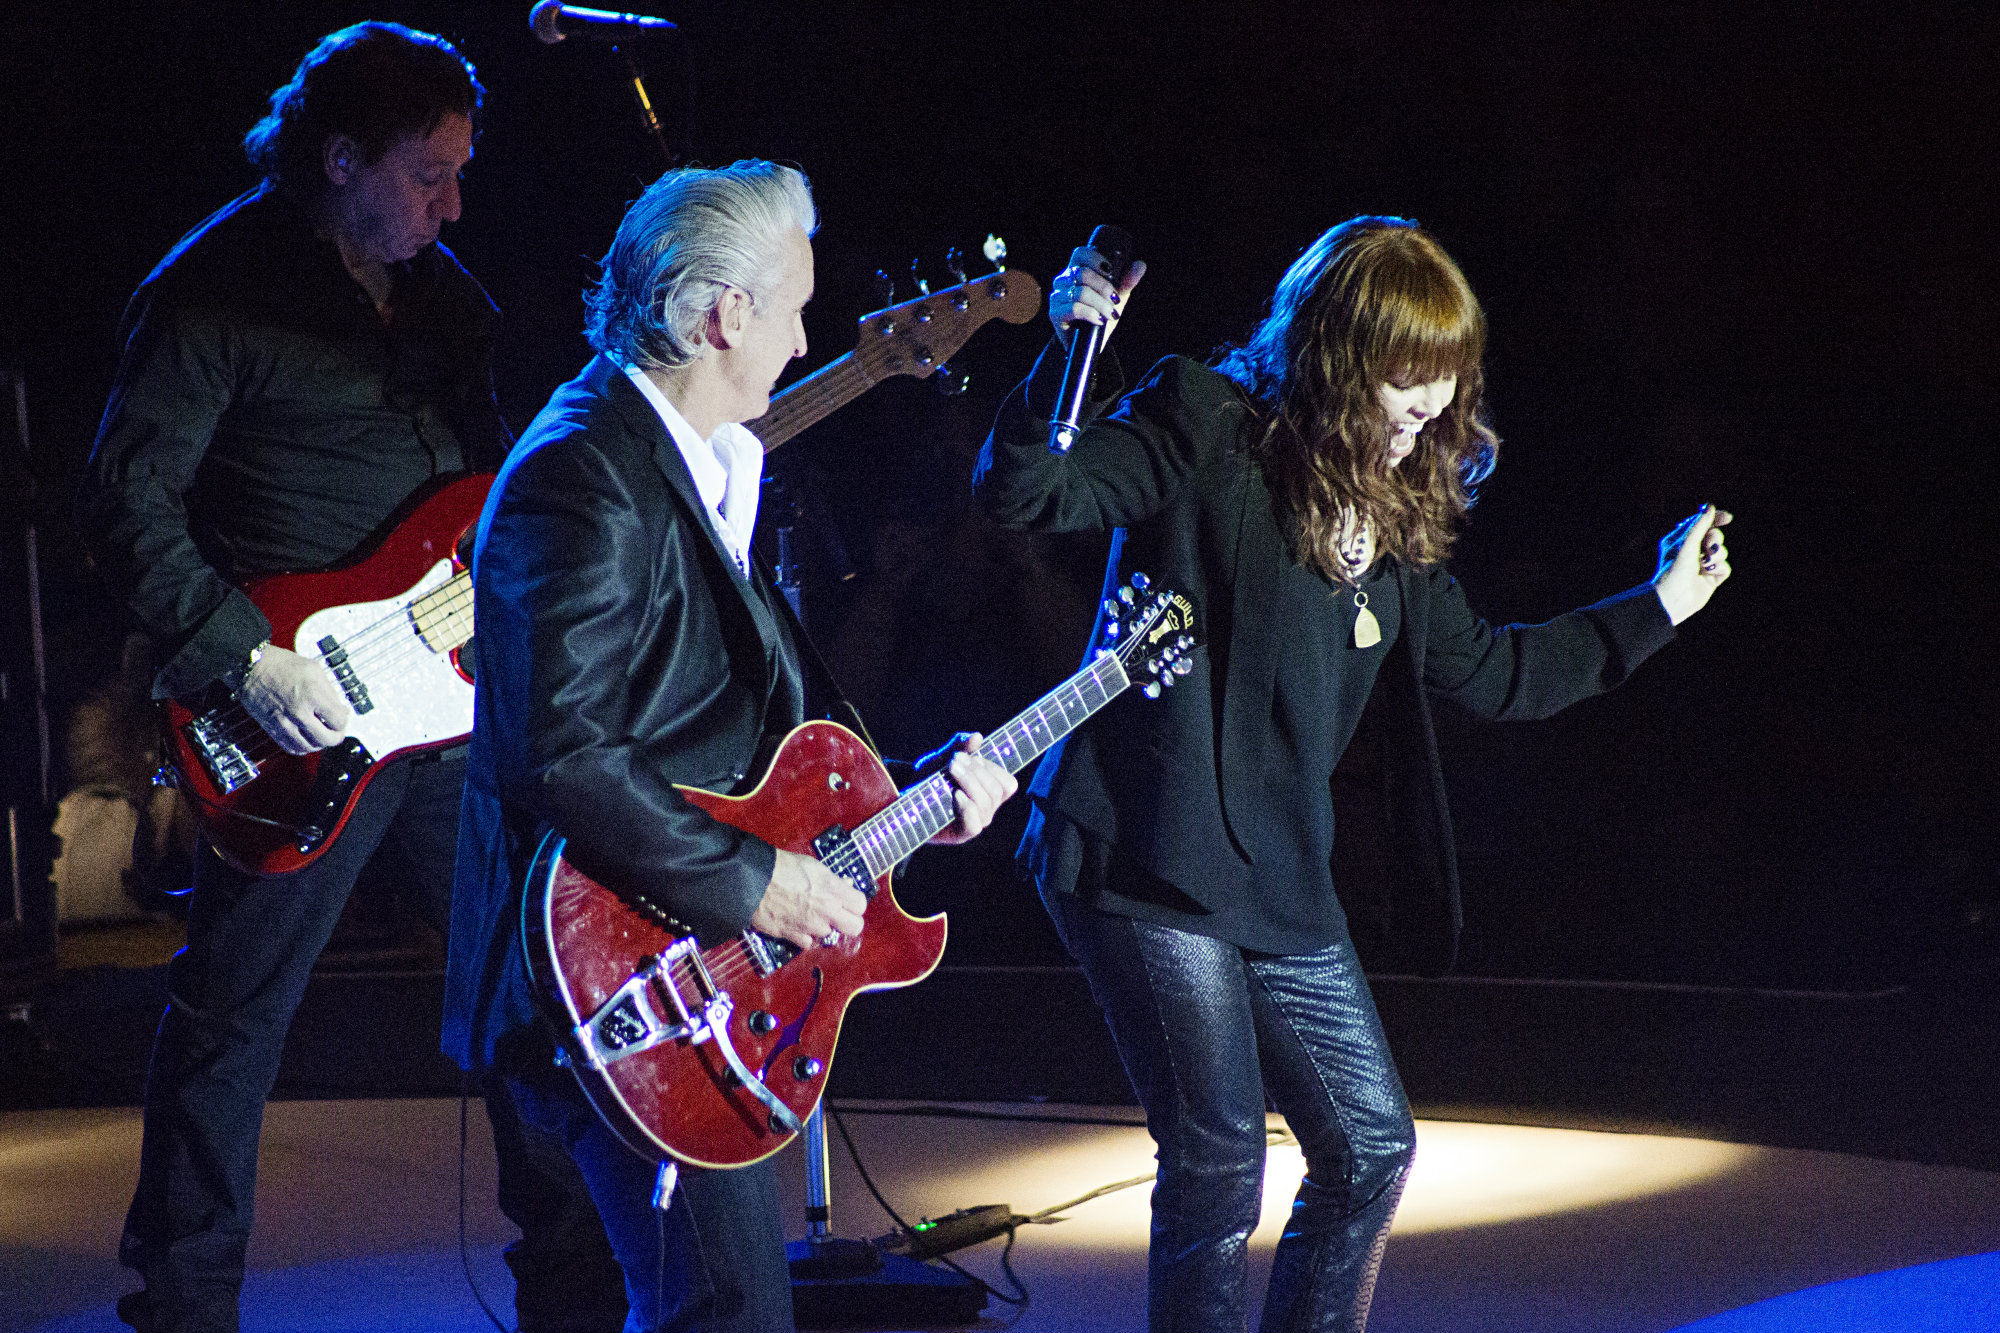 Mick Mahan, Neil Giraldo & Pat Benatar   Photo Courtesy of Laura DeSantis-Olsson